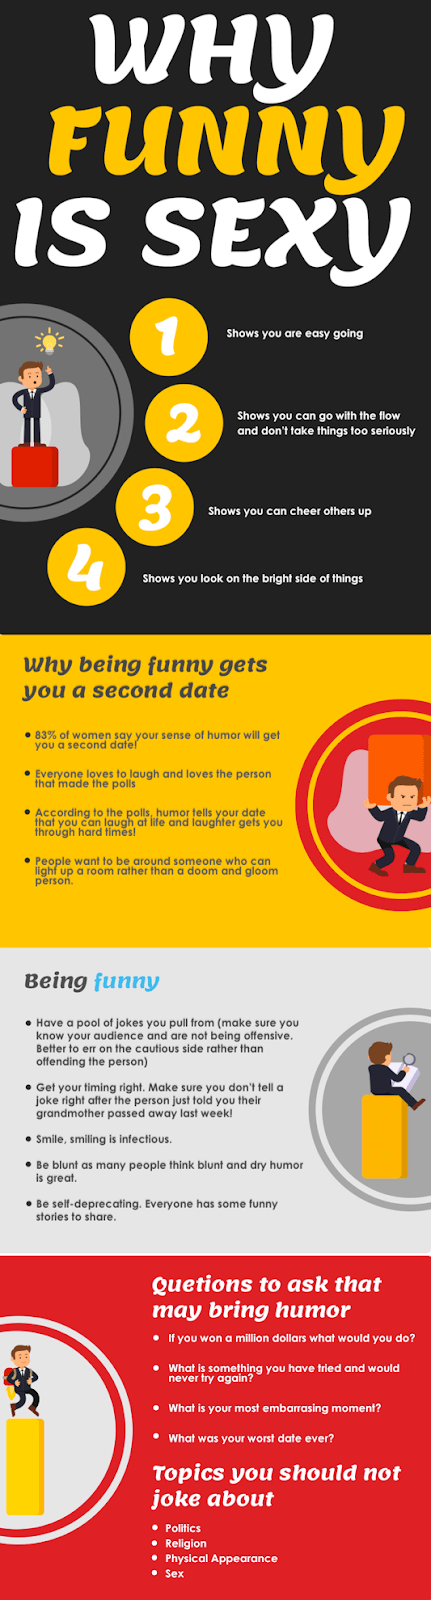 How to Appear Funny infographic